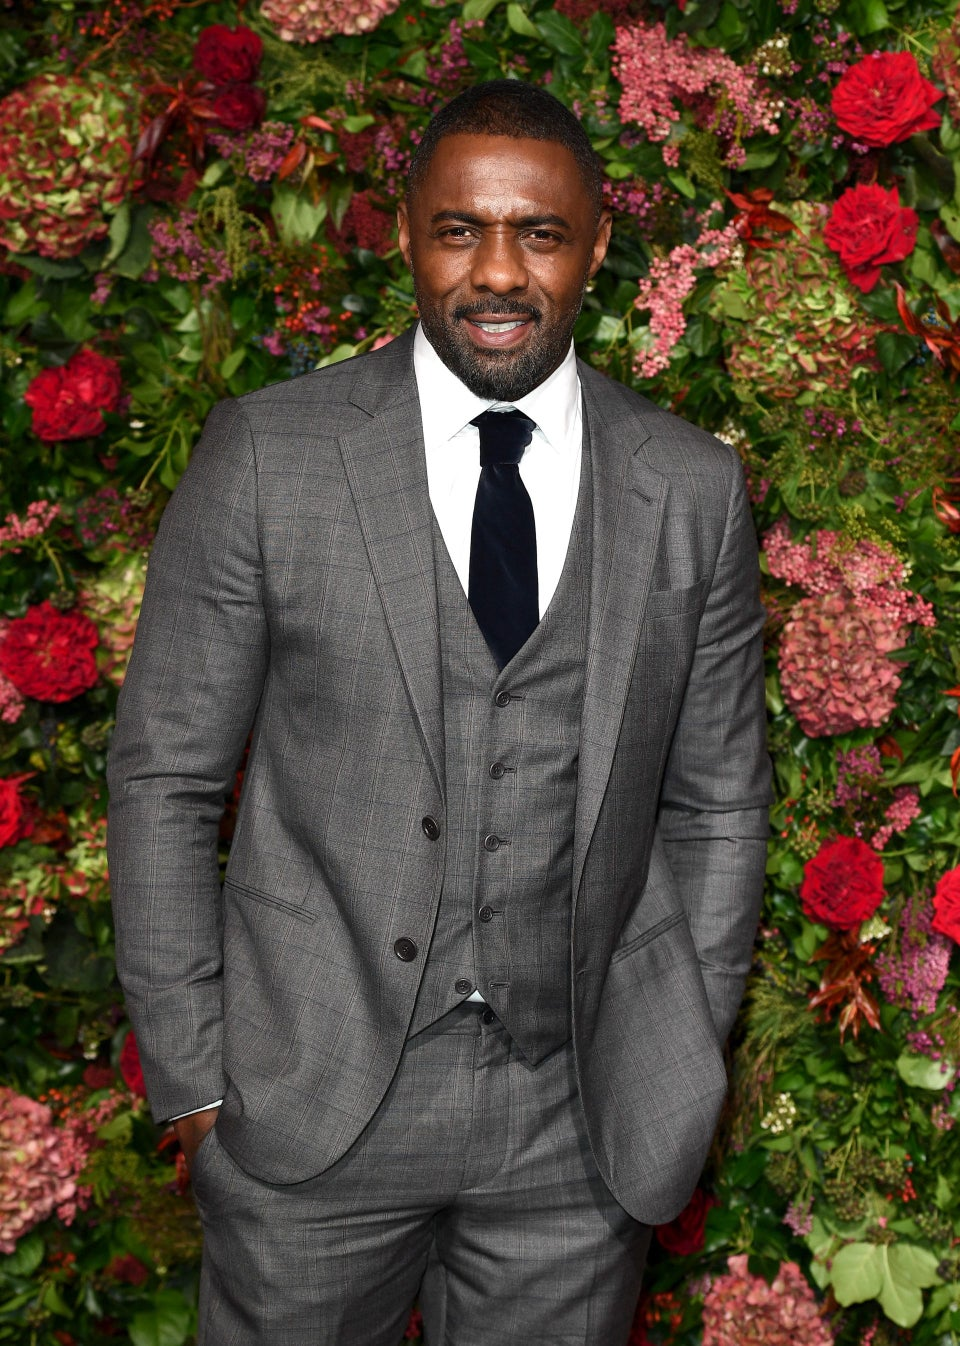 This Trailer For the Upcoming Season of 'Luther' Has Us Worried About Idris Elba